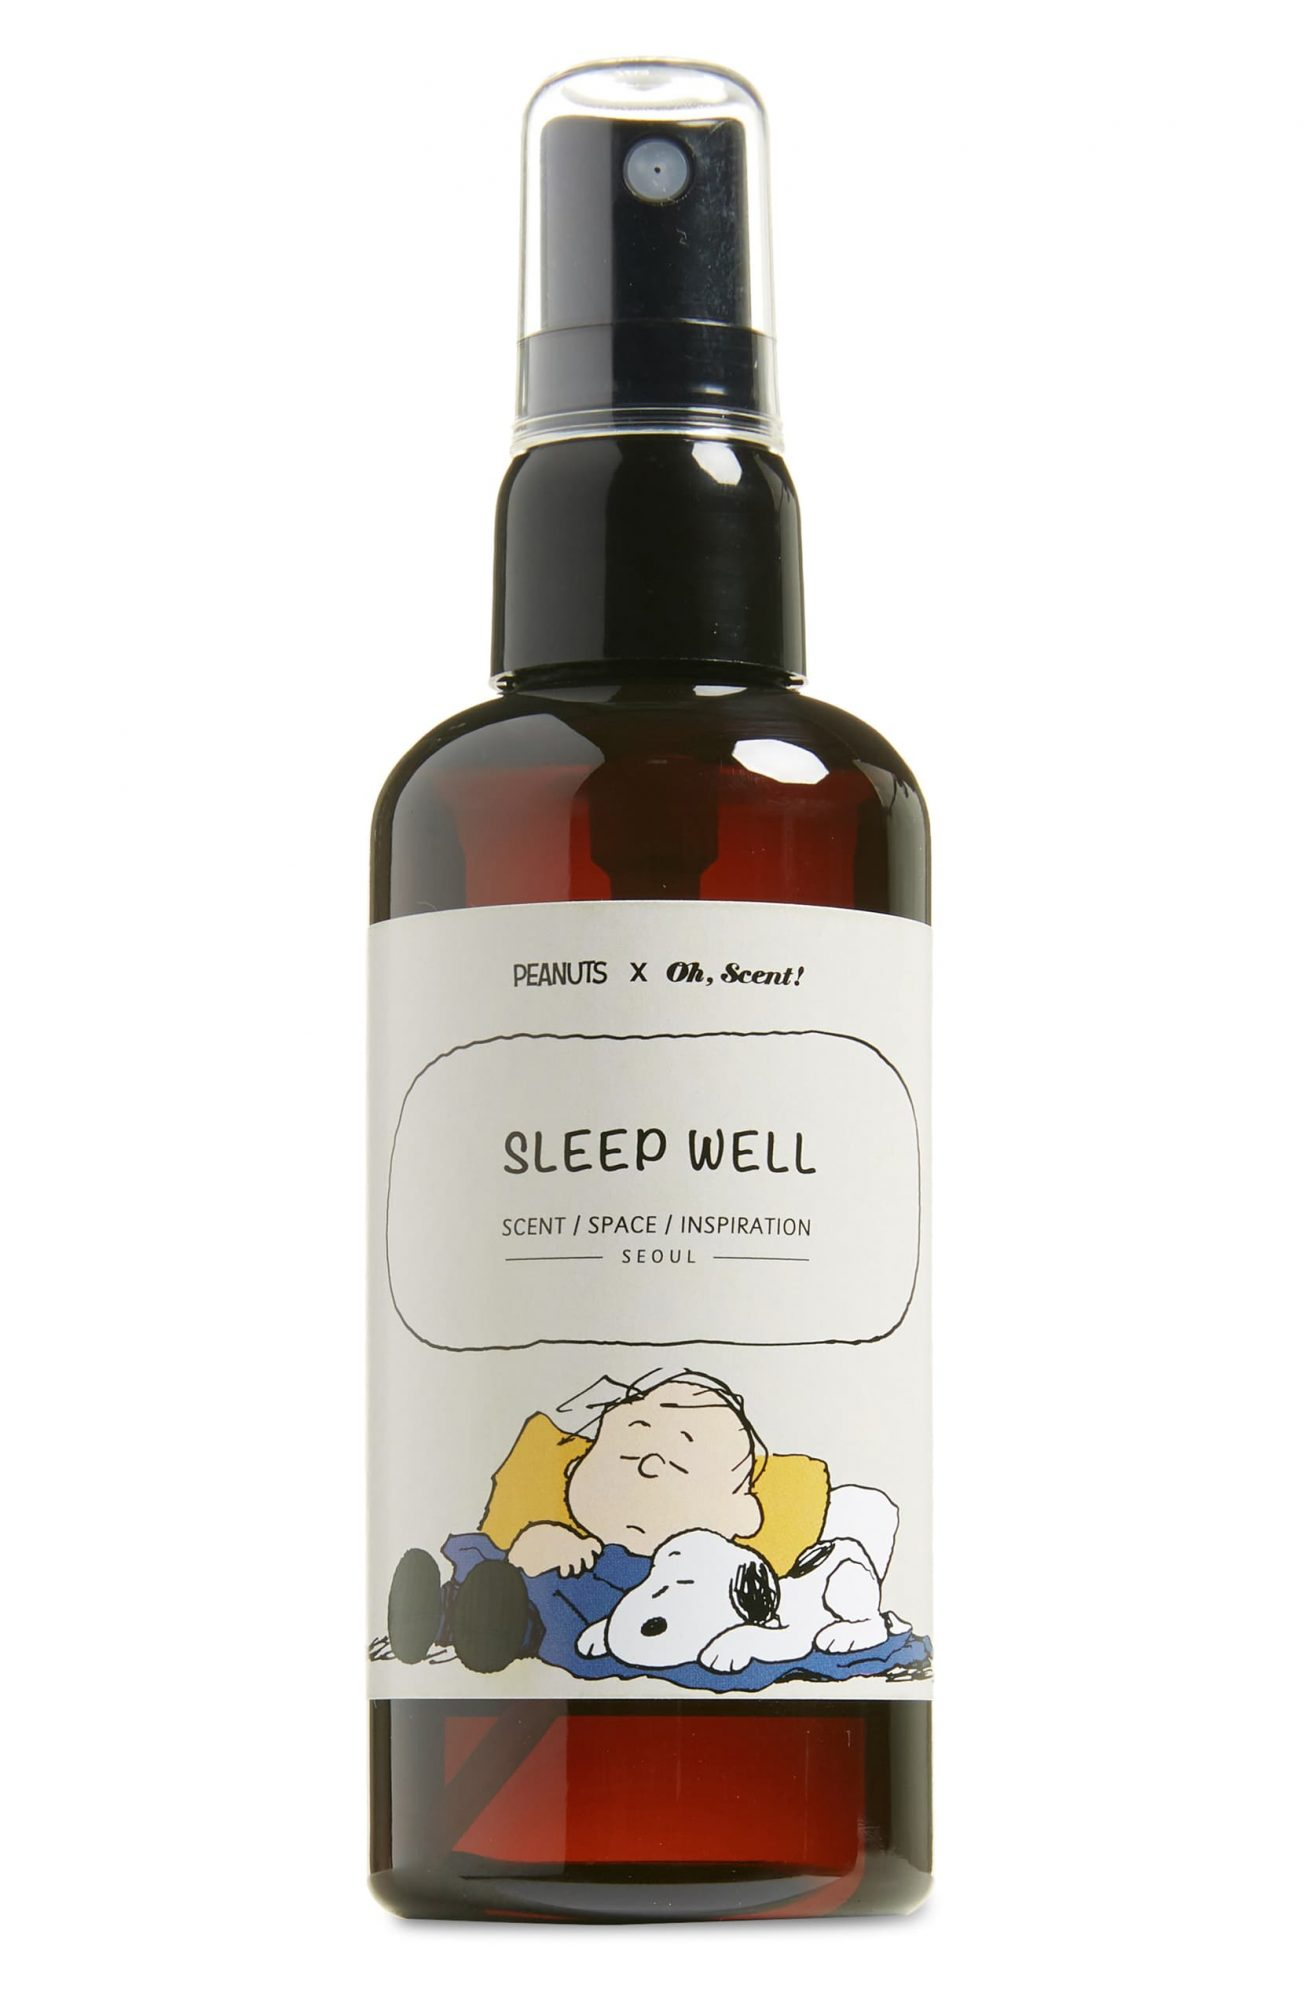 Oh, Scent! X Peanuts Sleep Well Pillow Perfume at Nordstrom